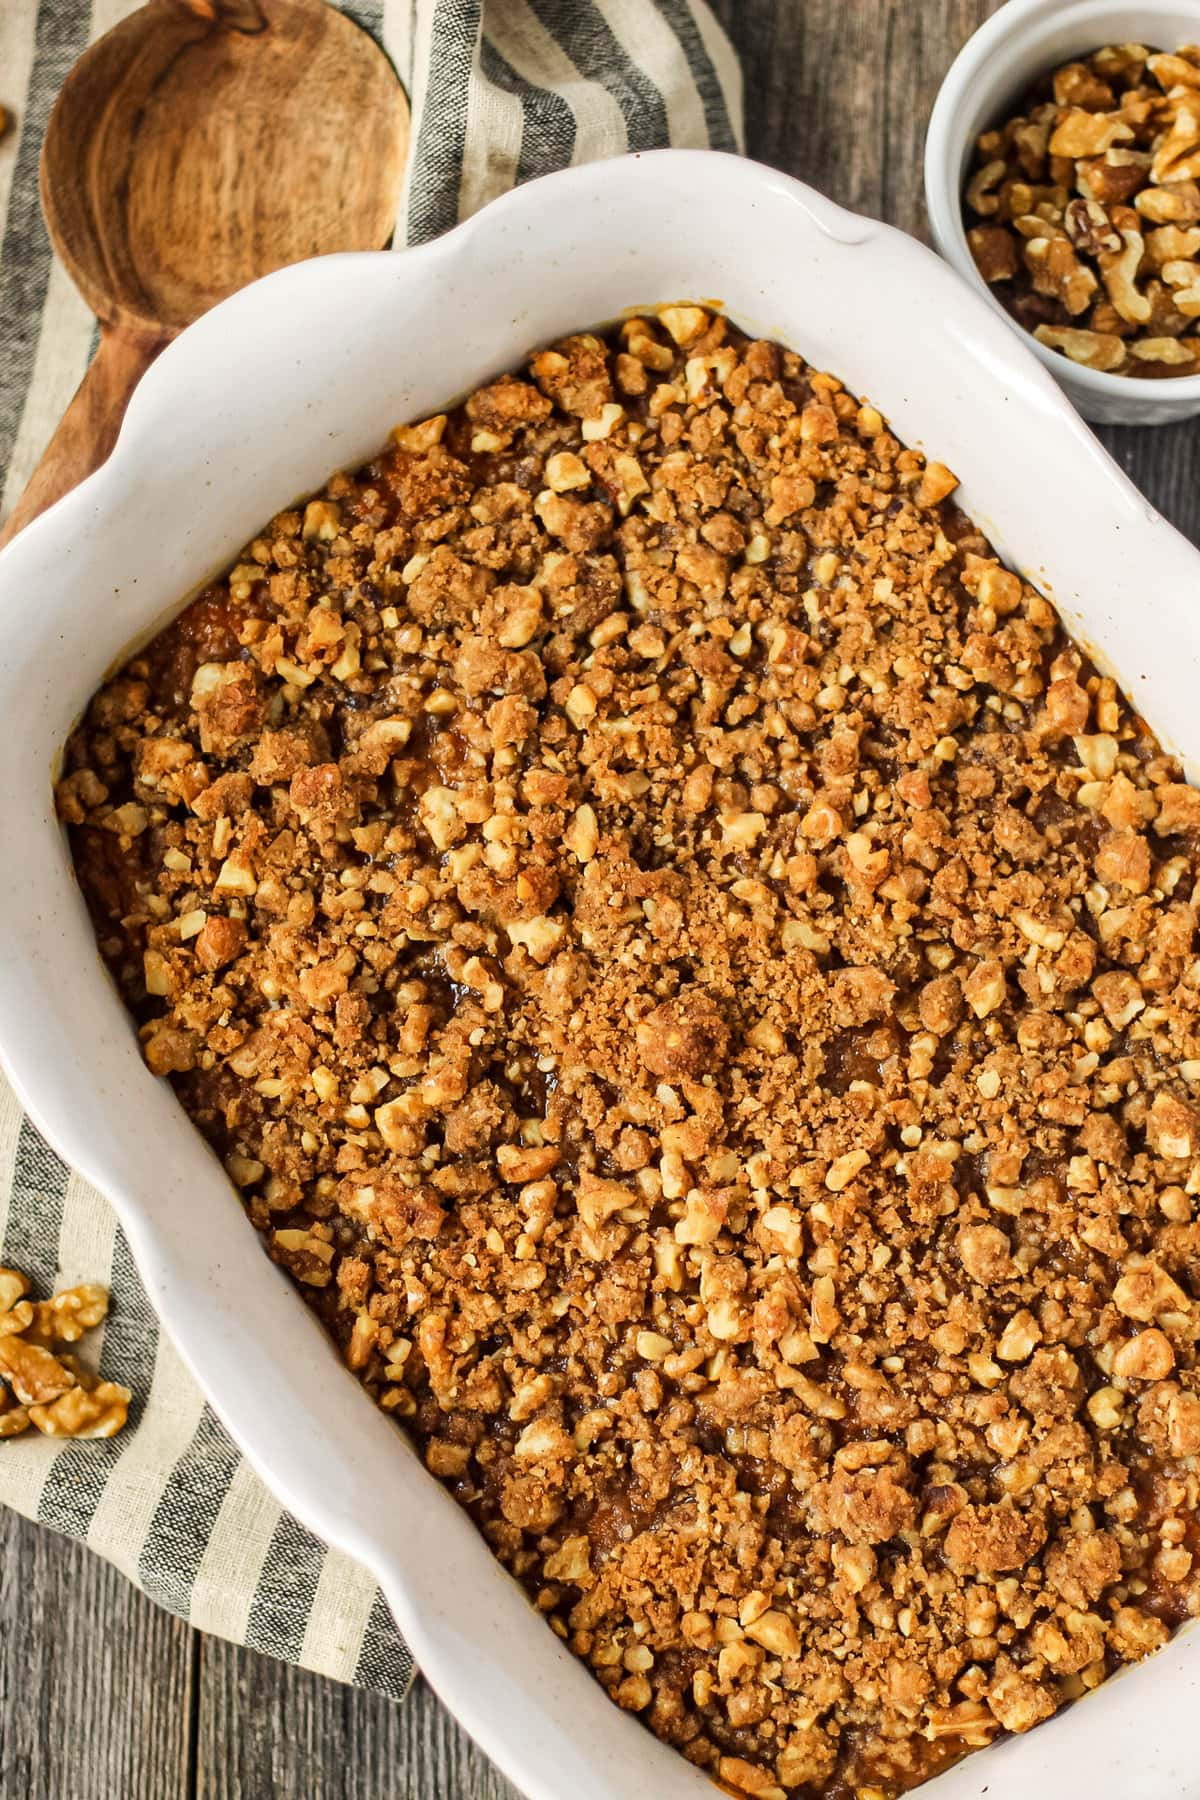 overhead shot of maple walnut sweet potato casserole in a glass baking dish on top of a wooden surface. Striped dish towel underneath dish and wooden spoon in left hand corner.